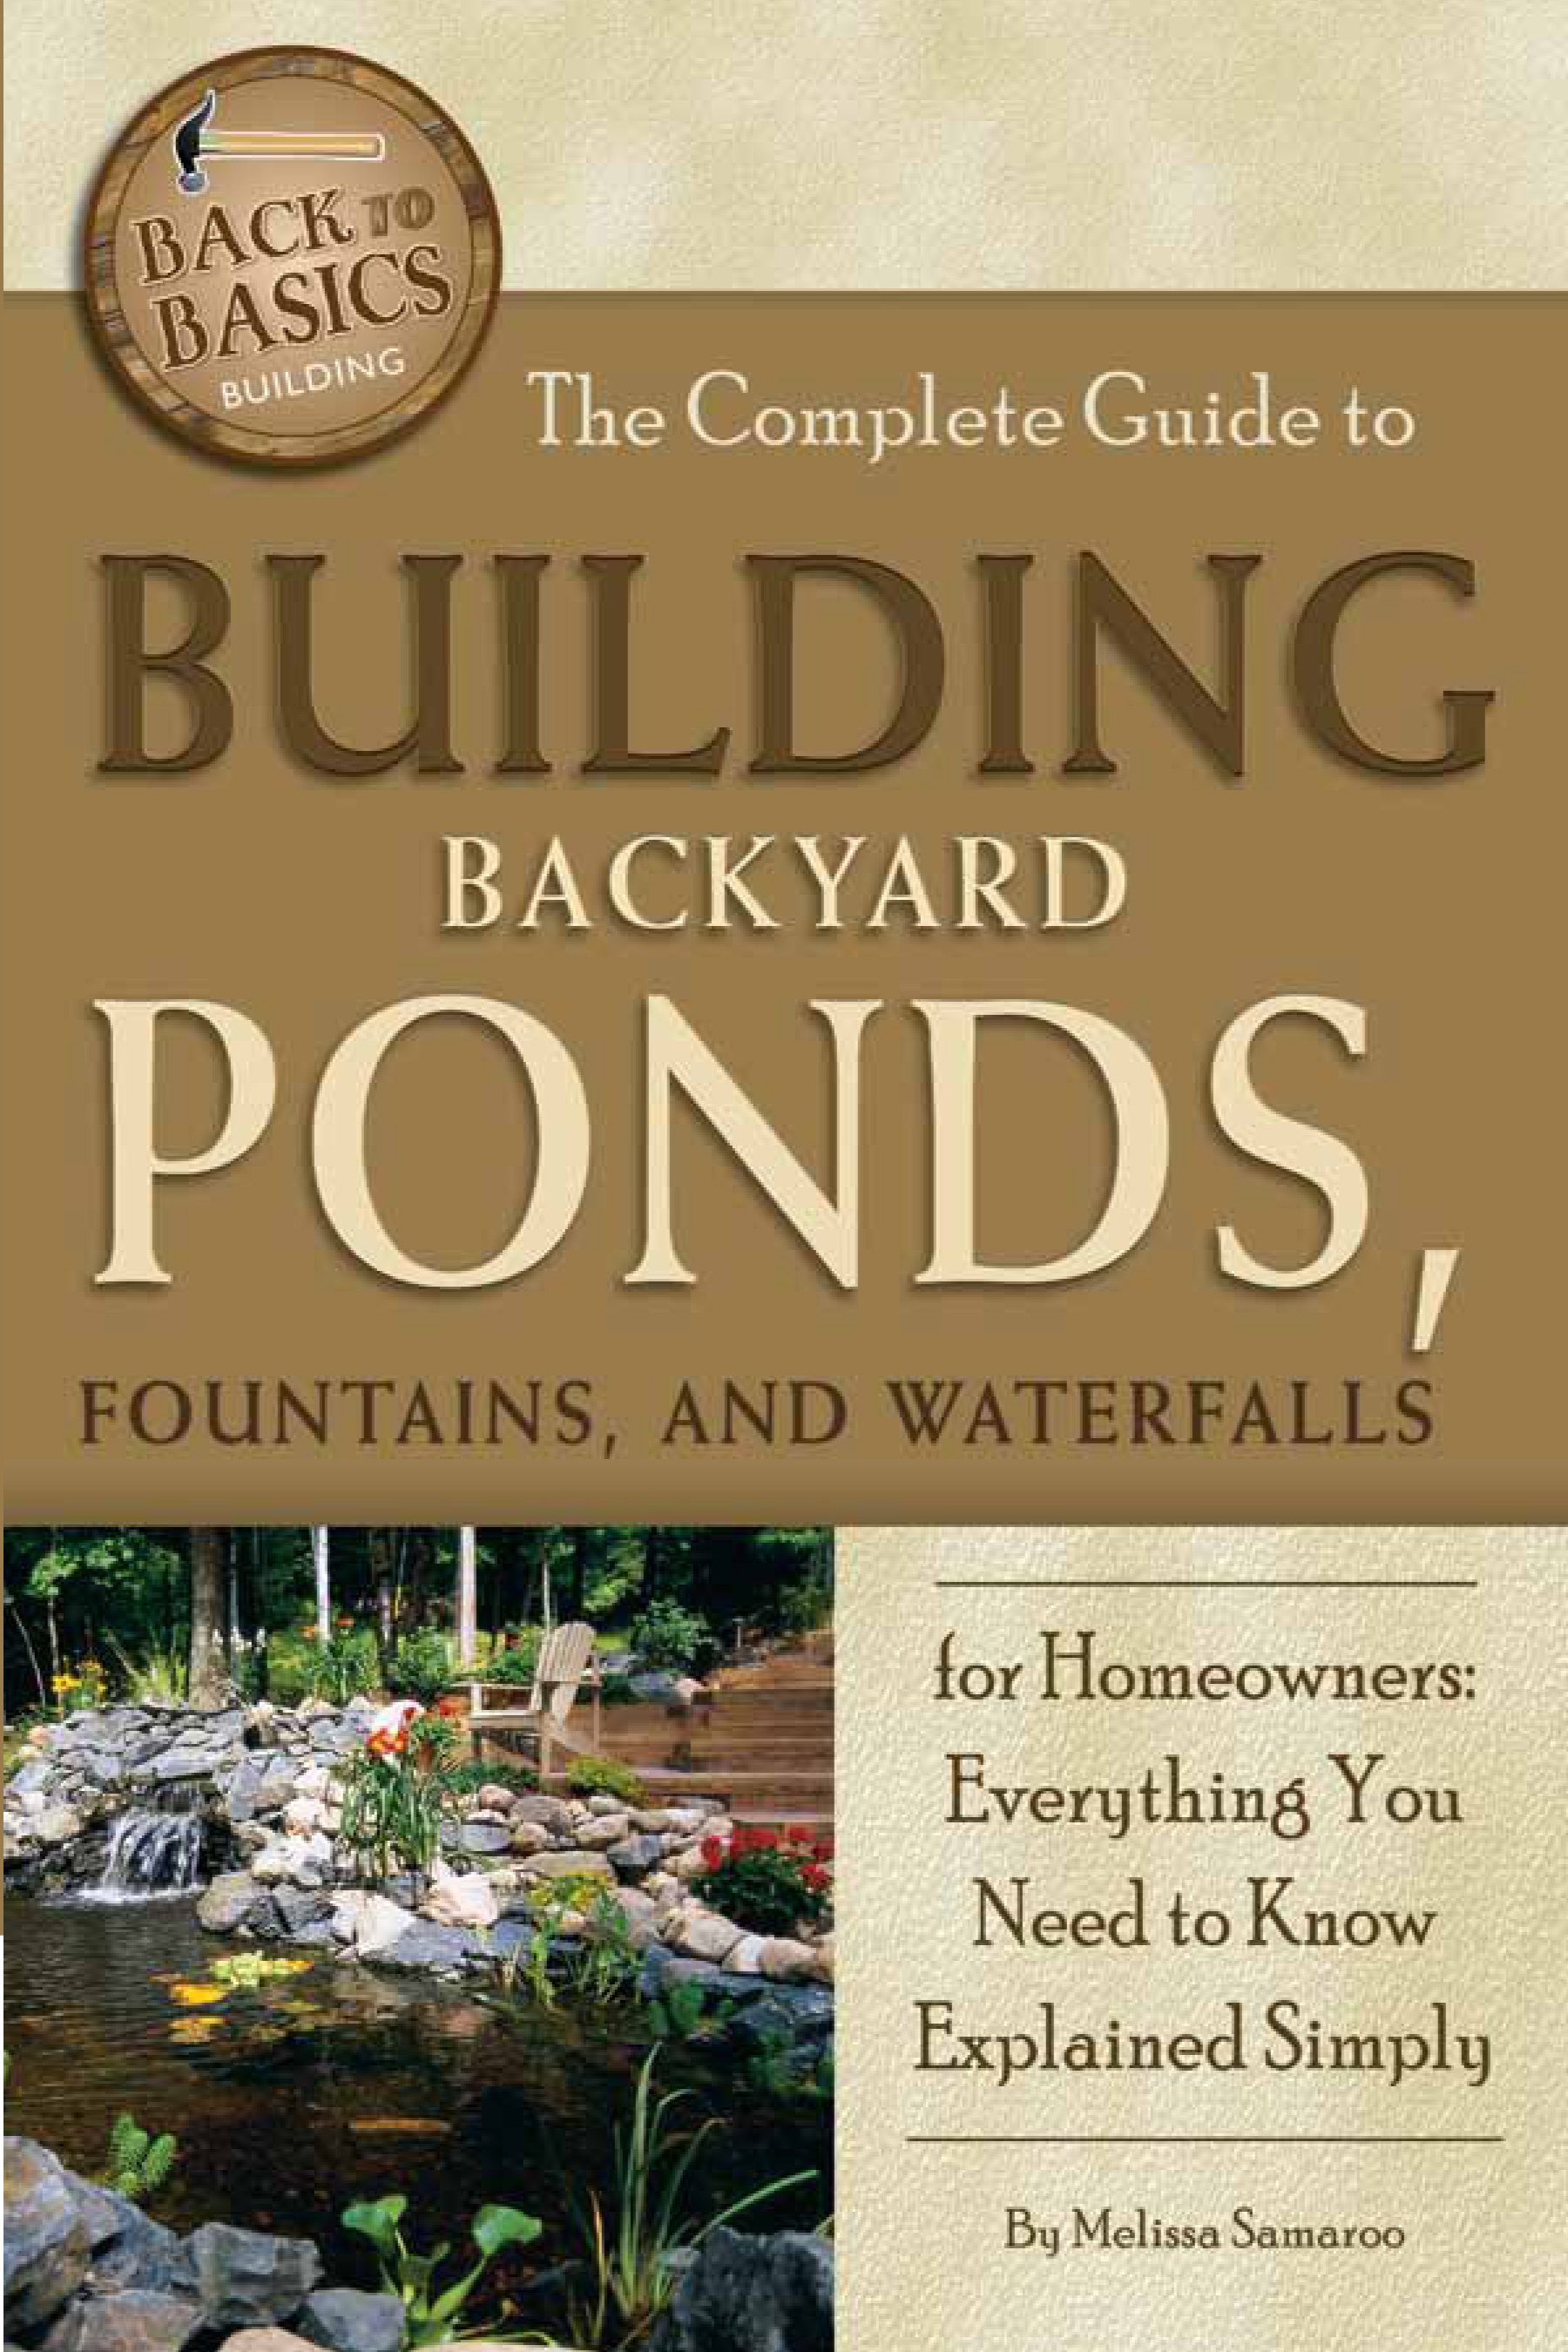 The Complete Guide to Building Backyard Ponds, Fountains, and Waterfalls for Homeowners  Everything You Need to Know Explained Simply